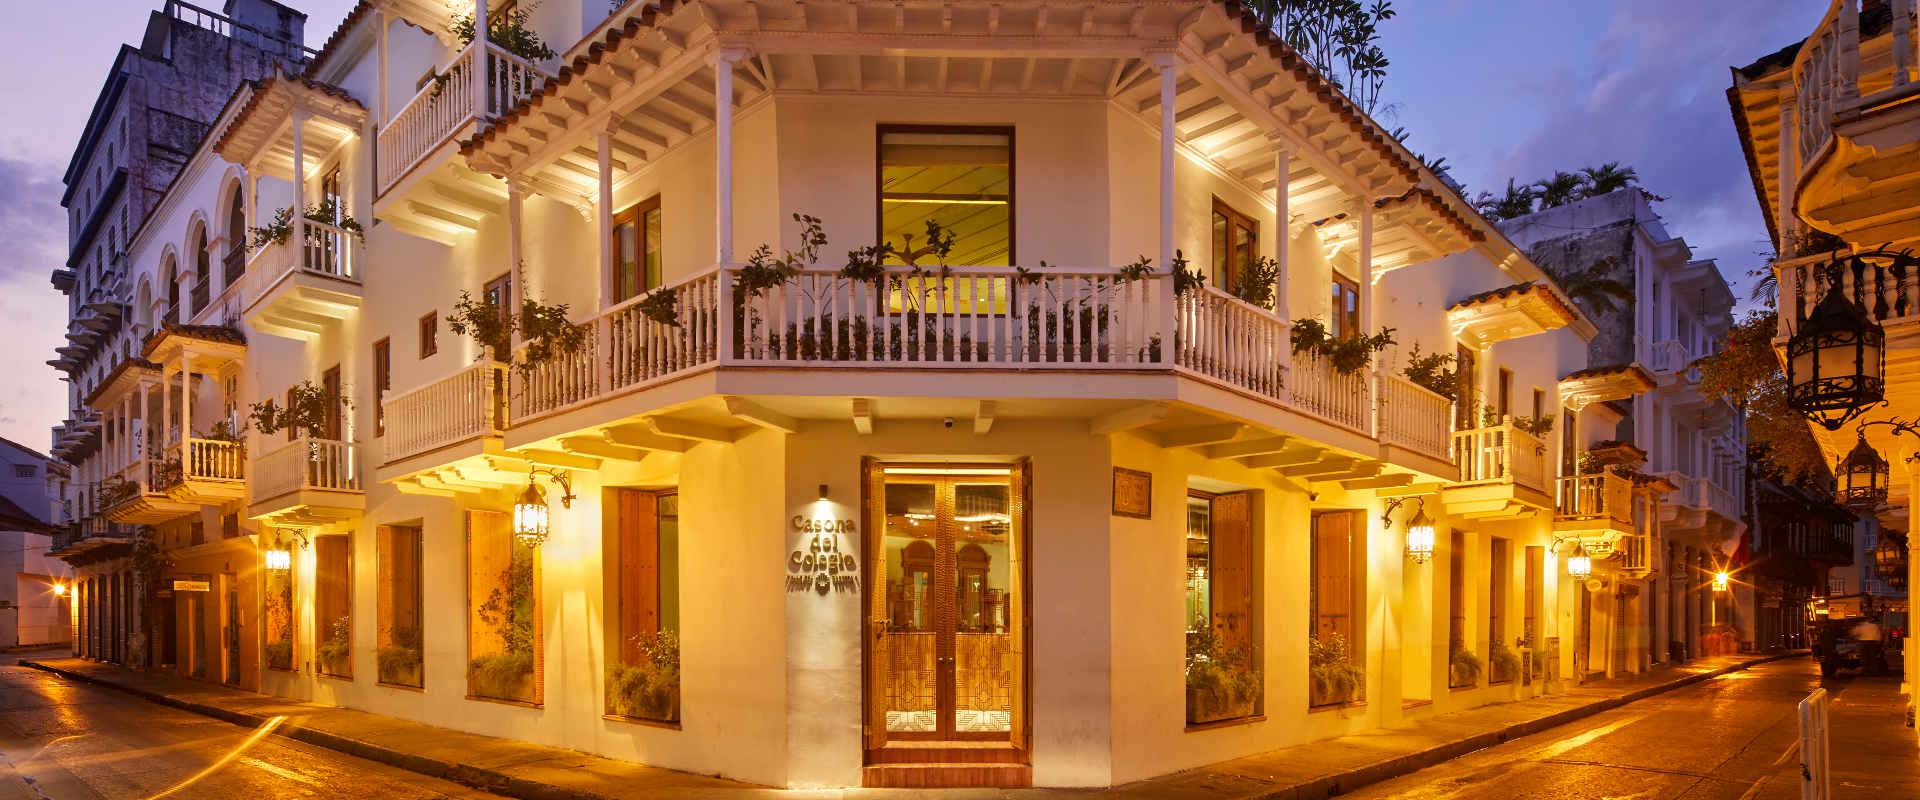 Live your own story in the  magic cartagena de indias casona del colegio hotel